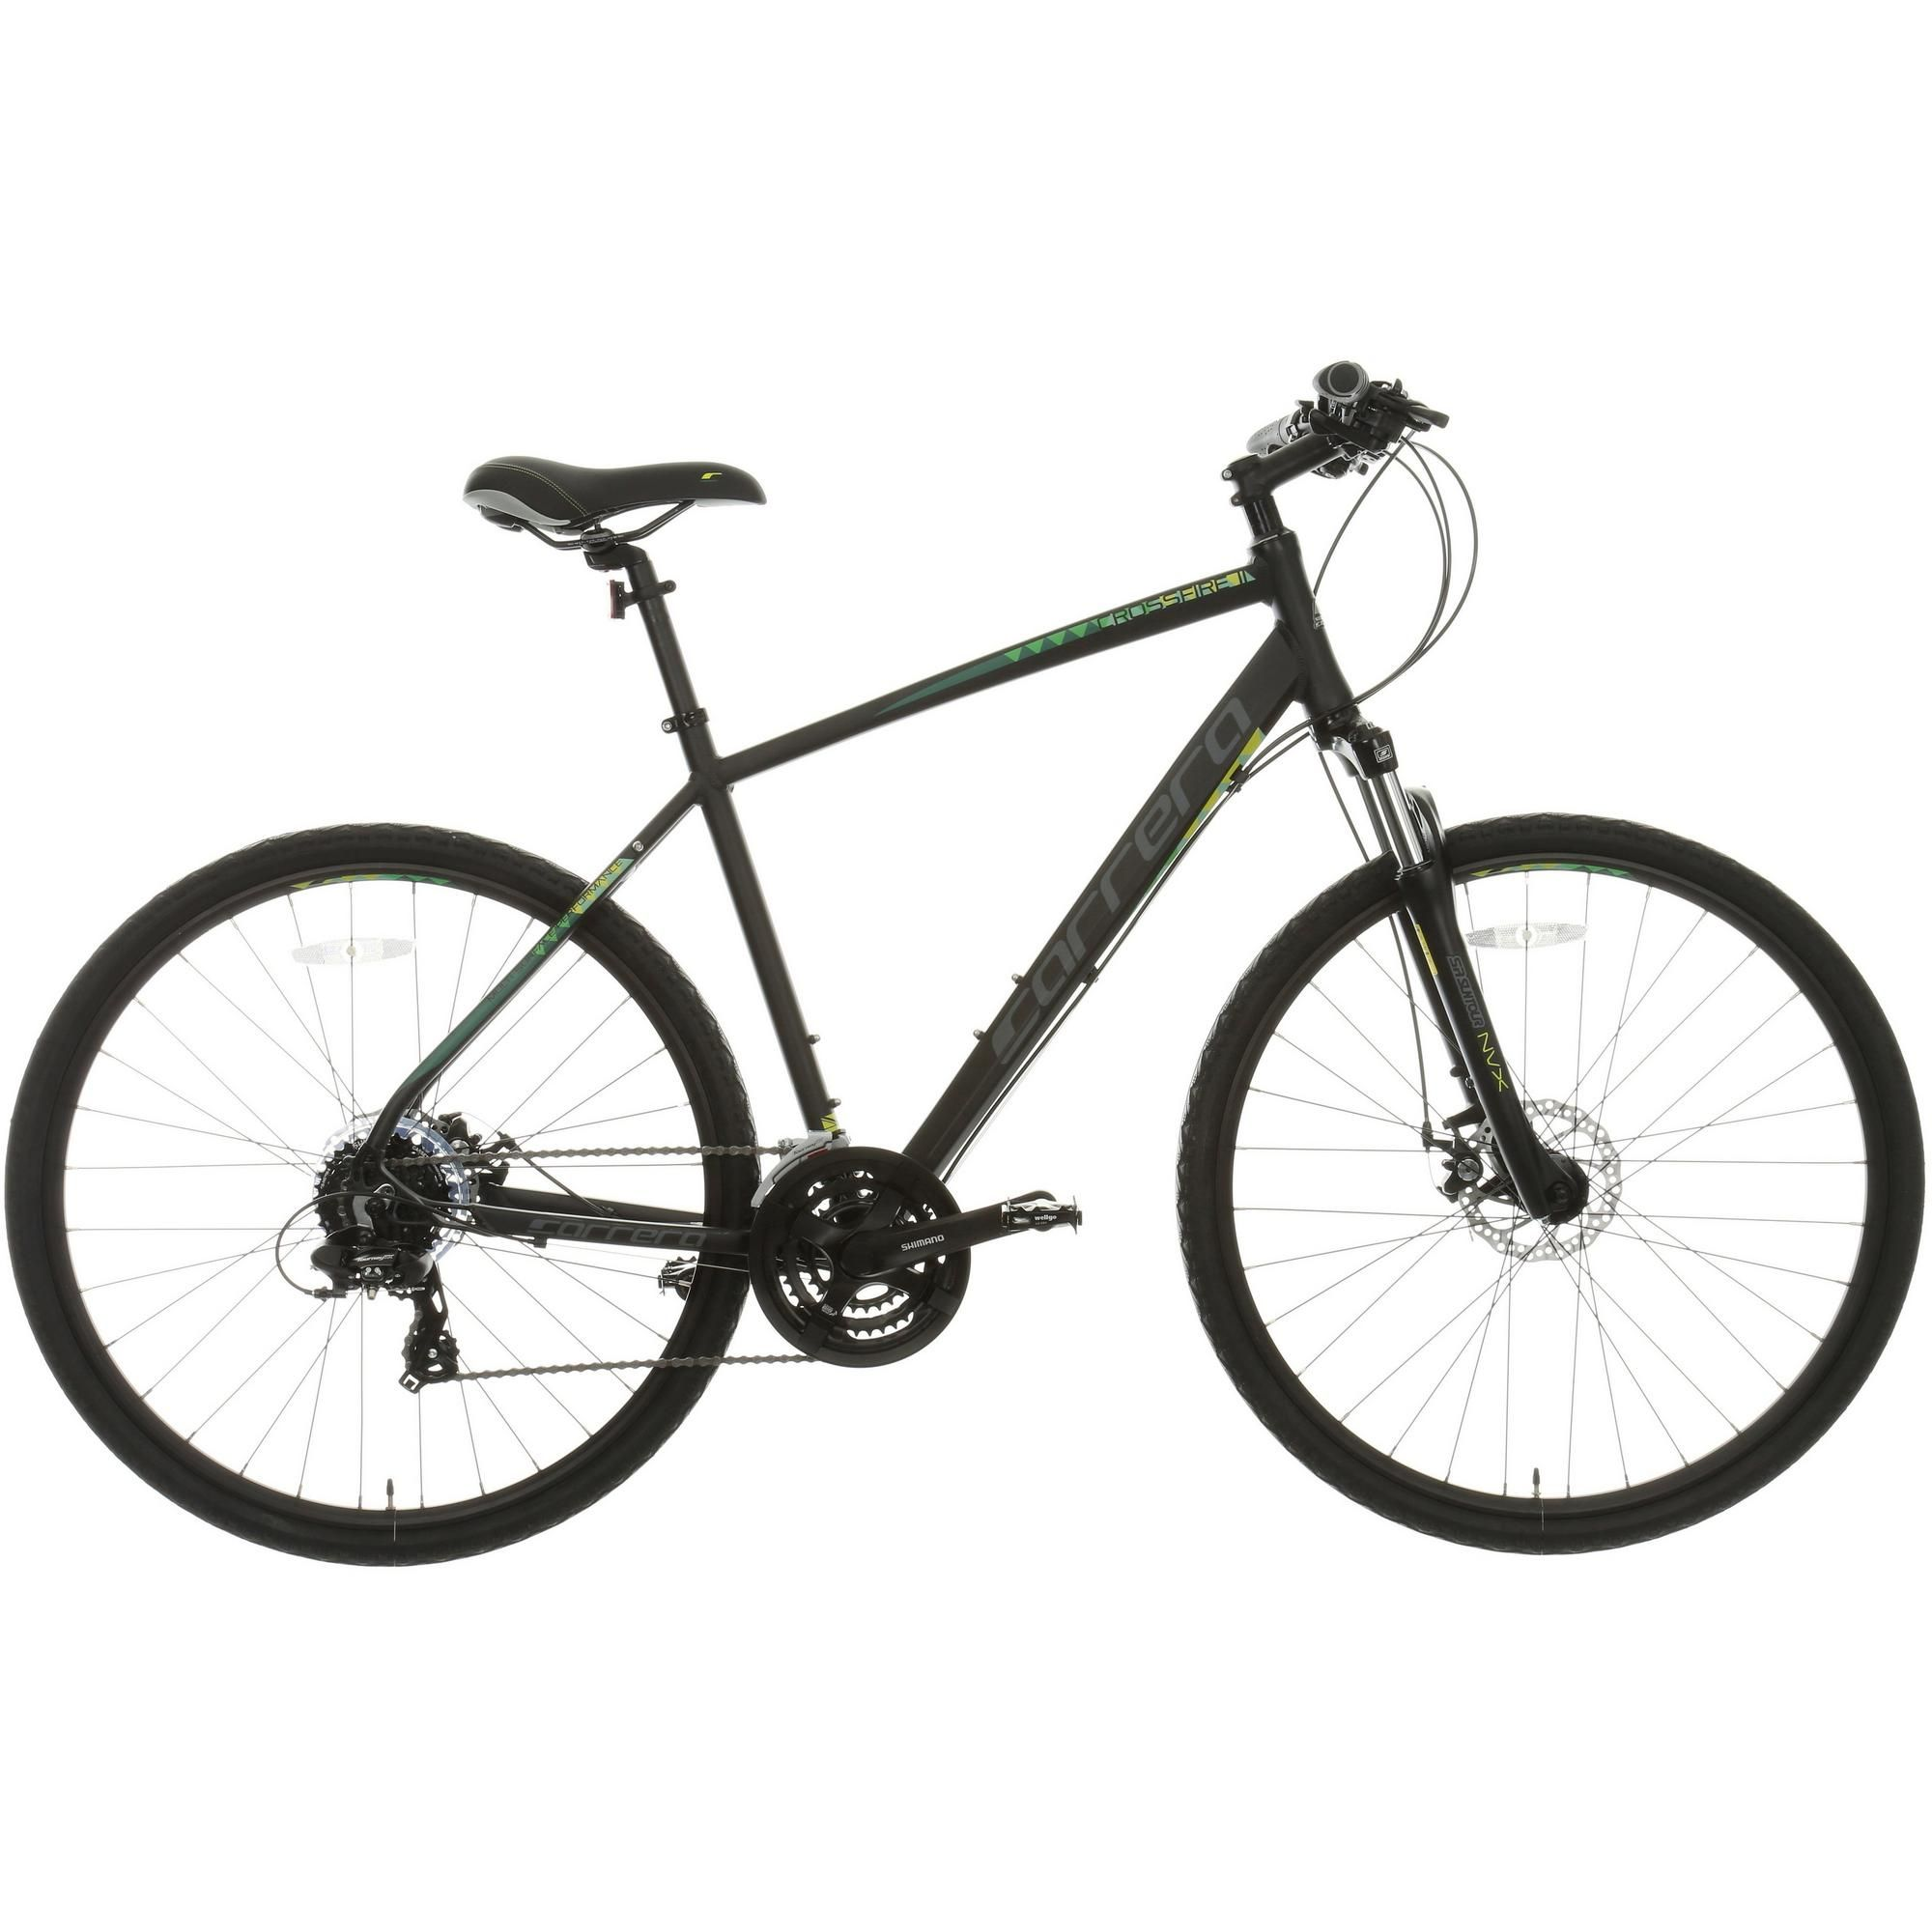 Carrera Crossfire 2 Mens Hybrid Bike Black 17 19 21 Frames